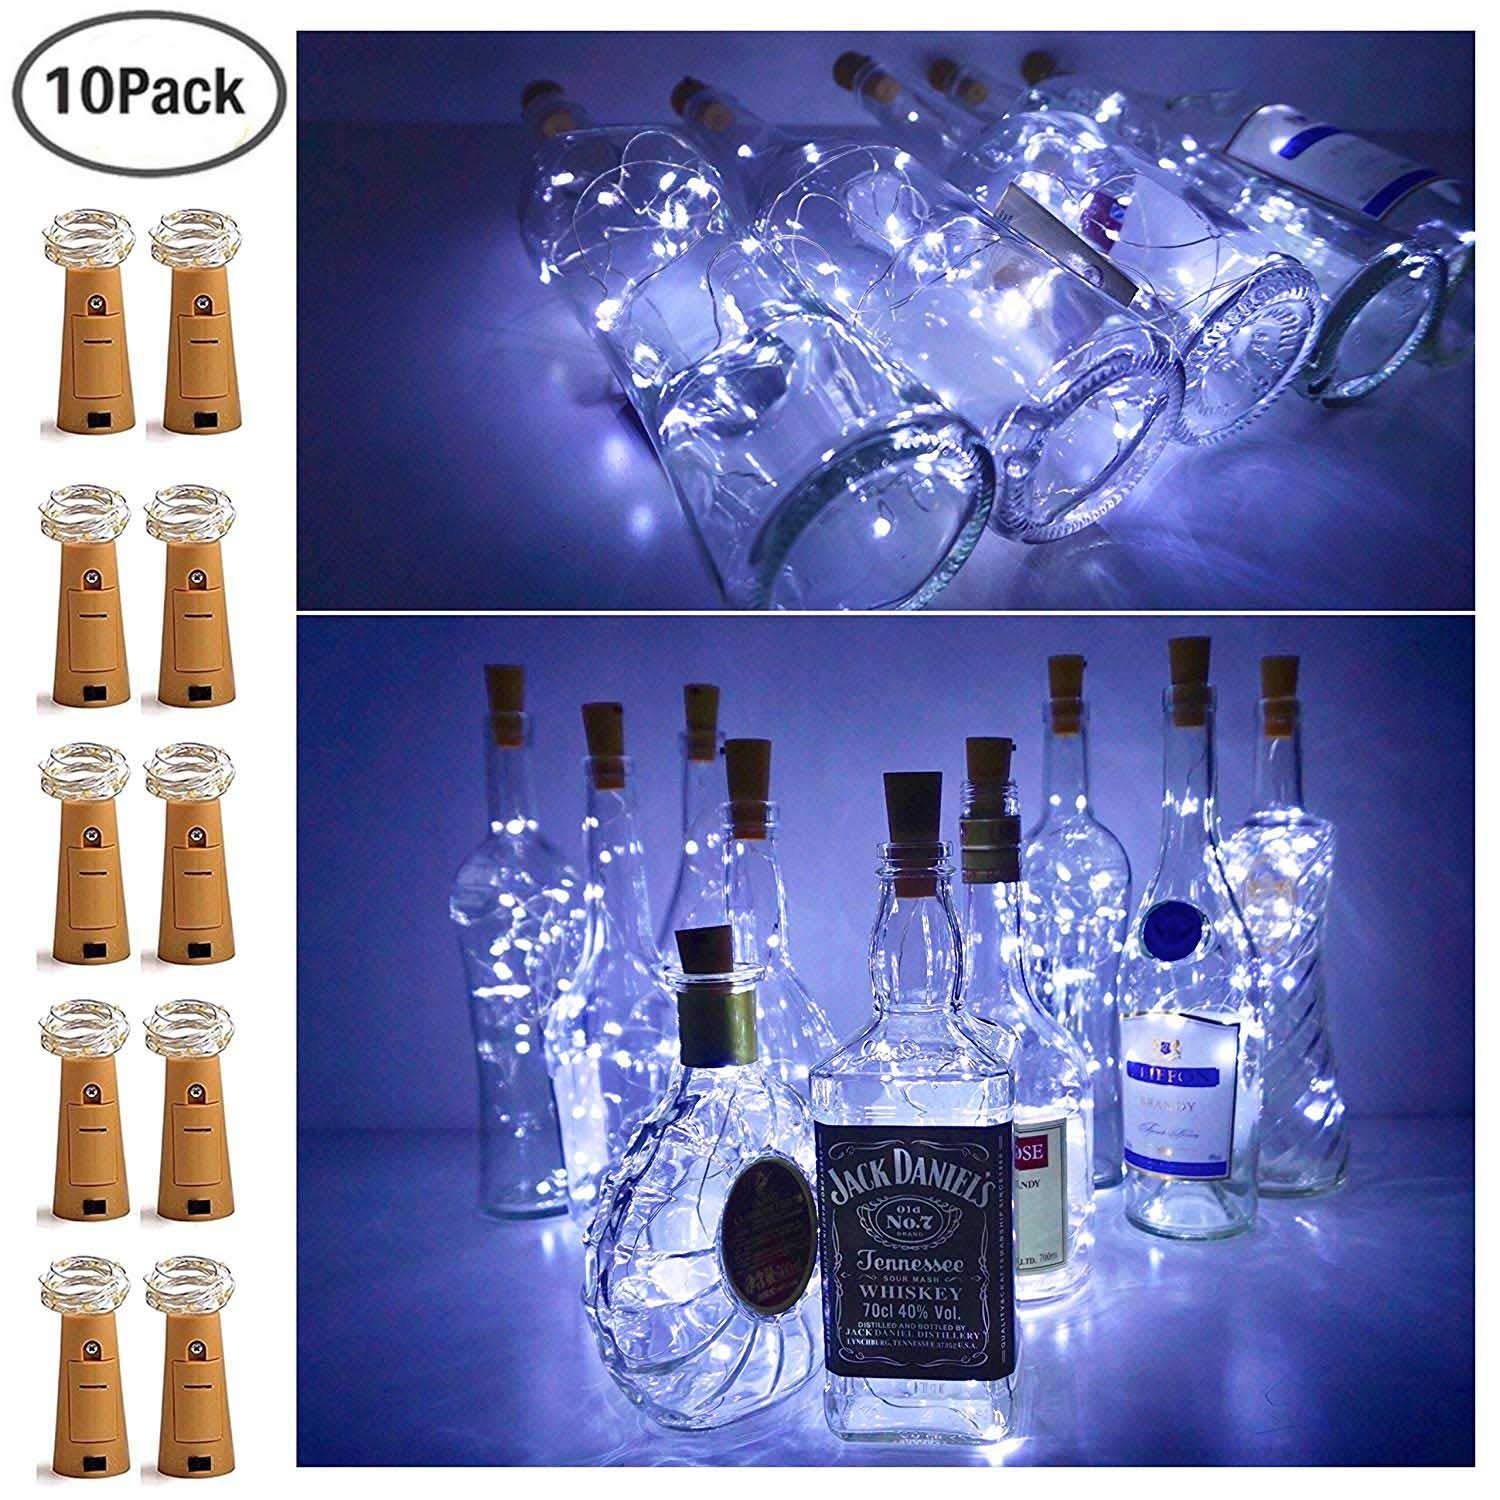 20 LED Bottle Cork String Lights Wine Bottle Fairy Mini Copper Wire, Battery Operated Starry lights for DIY Christmas Halloween Wedding Party Indoor Outdoor Decoration,10 Pack (Cool White)